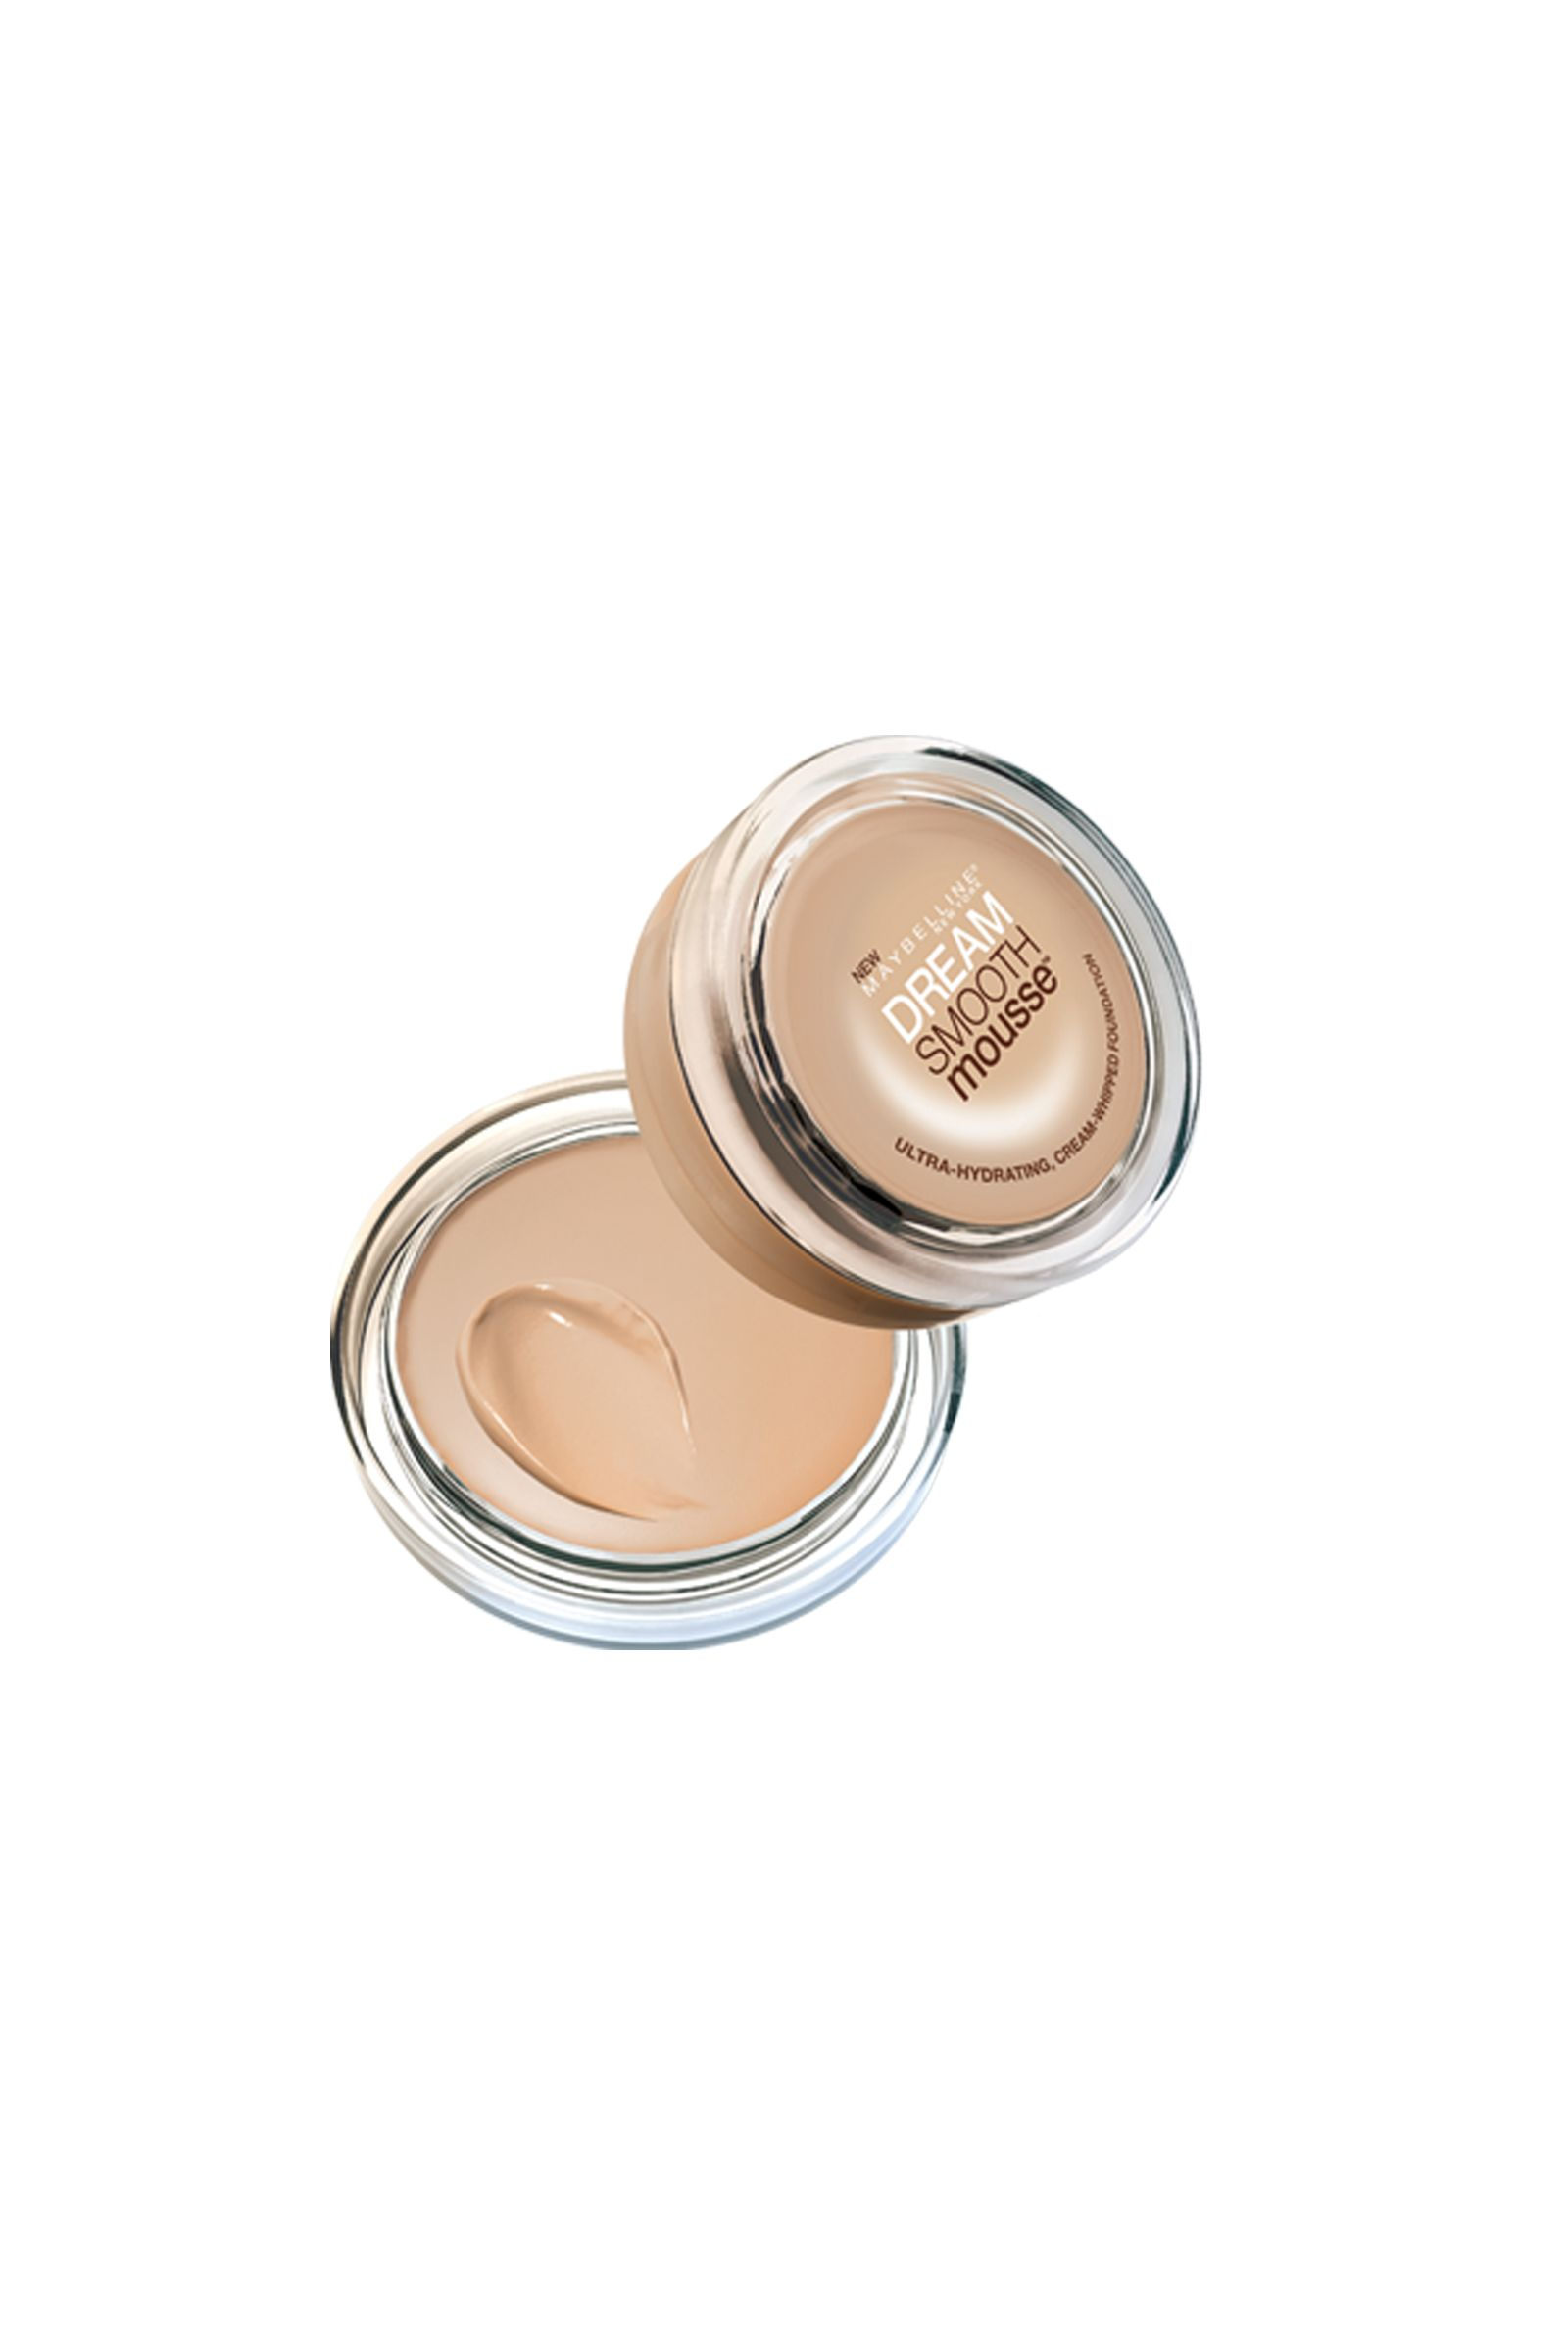 "Maybelline Dream Smooth Mousse, $10&#x3B; <a target=""_blank"" href=""http://www.maybelline.com/Products/Face-Makeup/Foundation/dream-smooth-mousse.aspx"">maybelline.com</a>